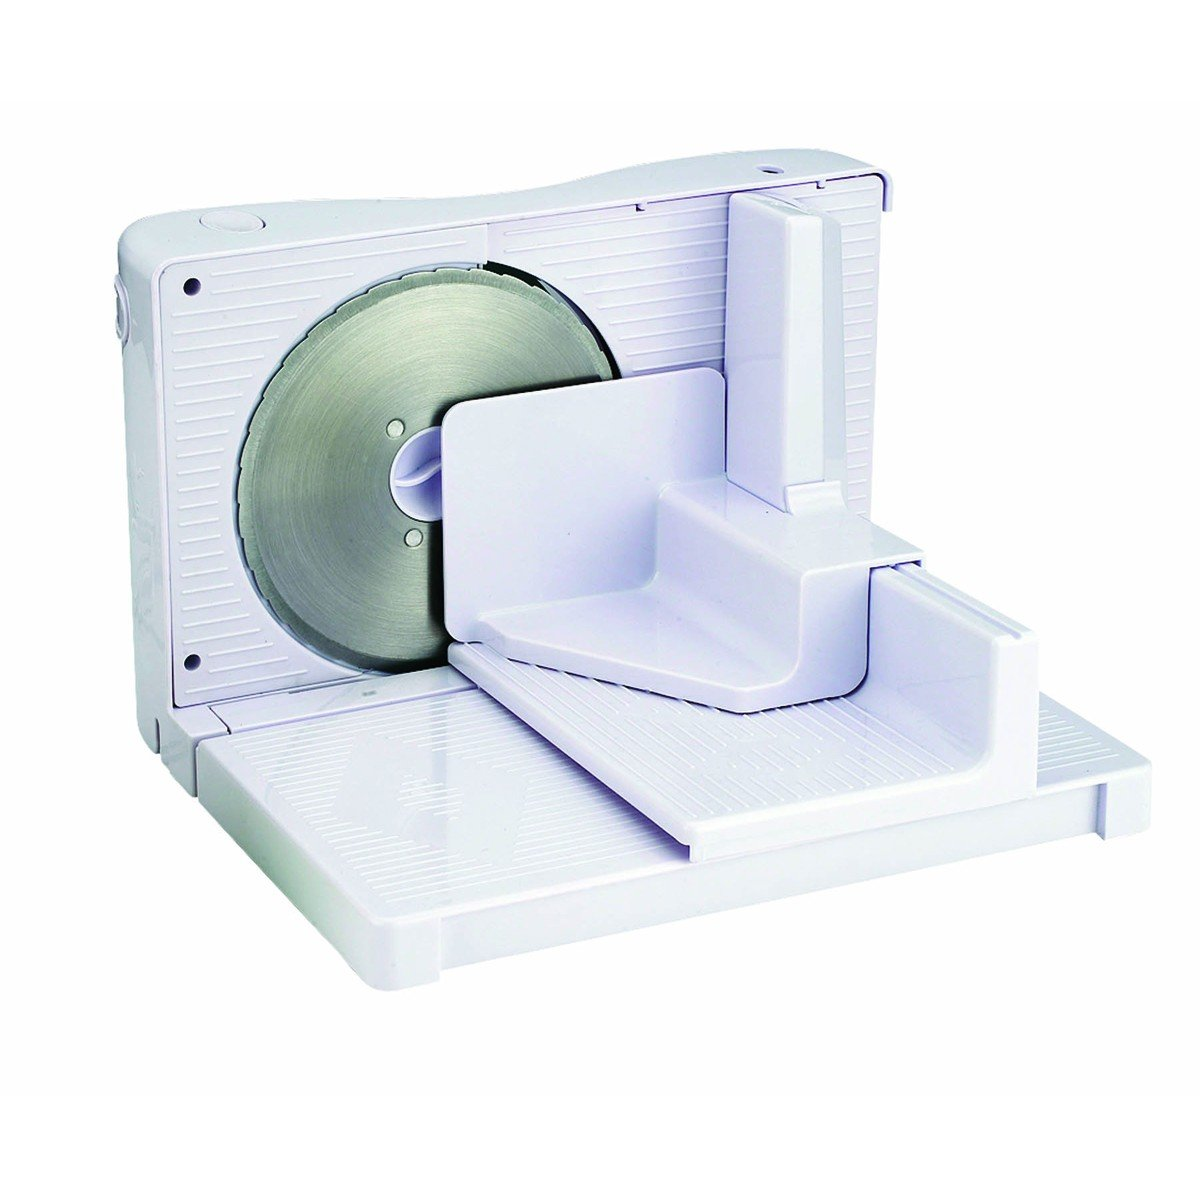 Electric Adjustable Compact Food Slicer with Tray and Fence by HFT